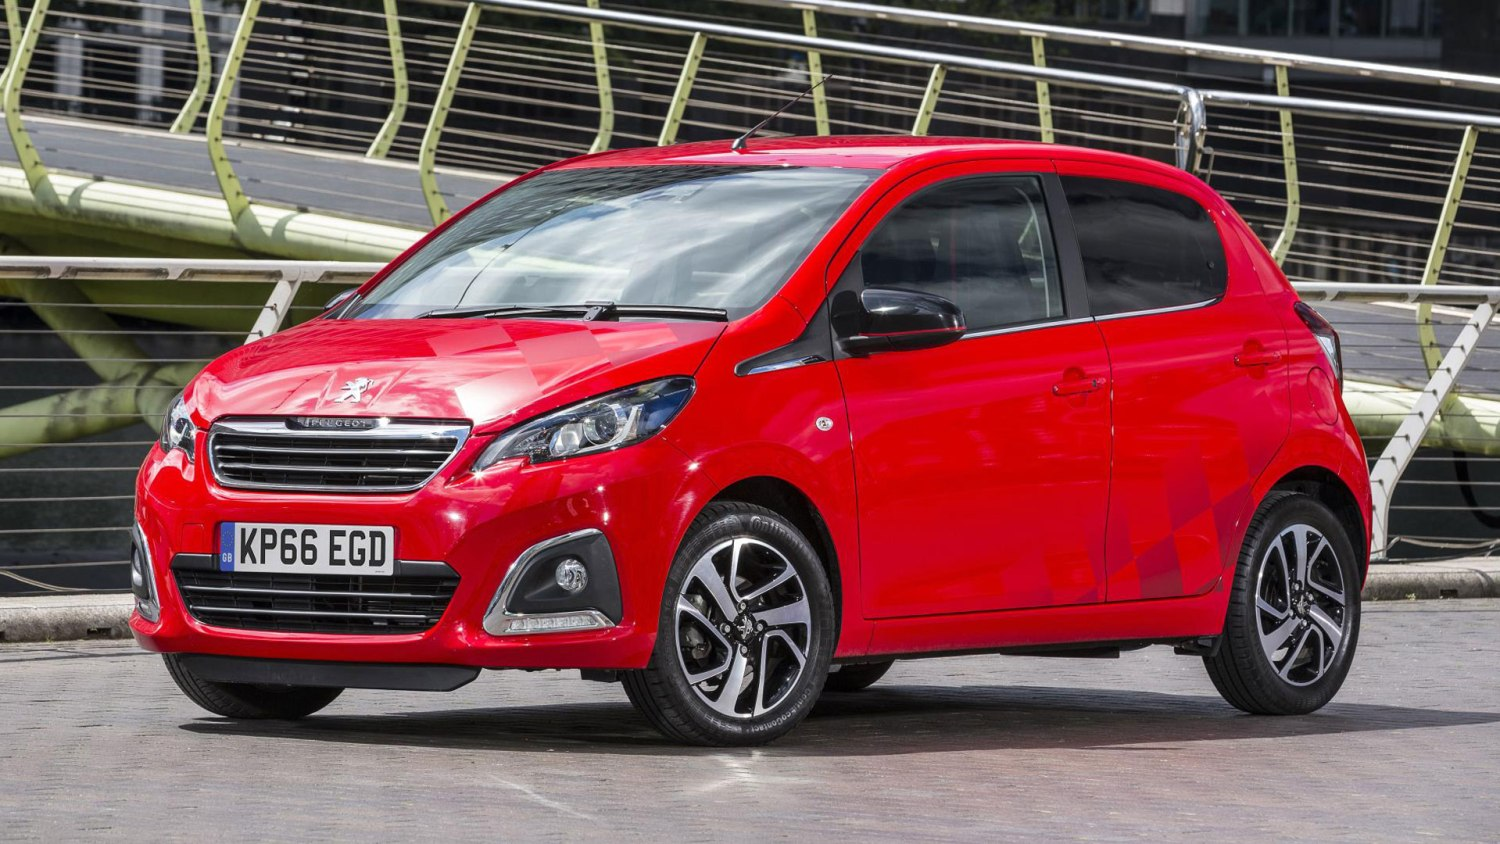 The cheapest new cars on sale